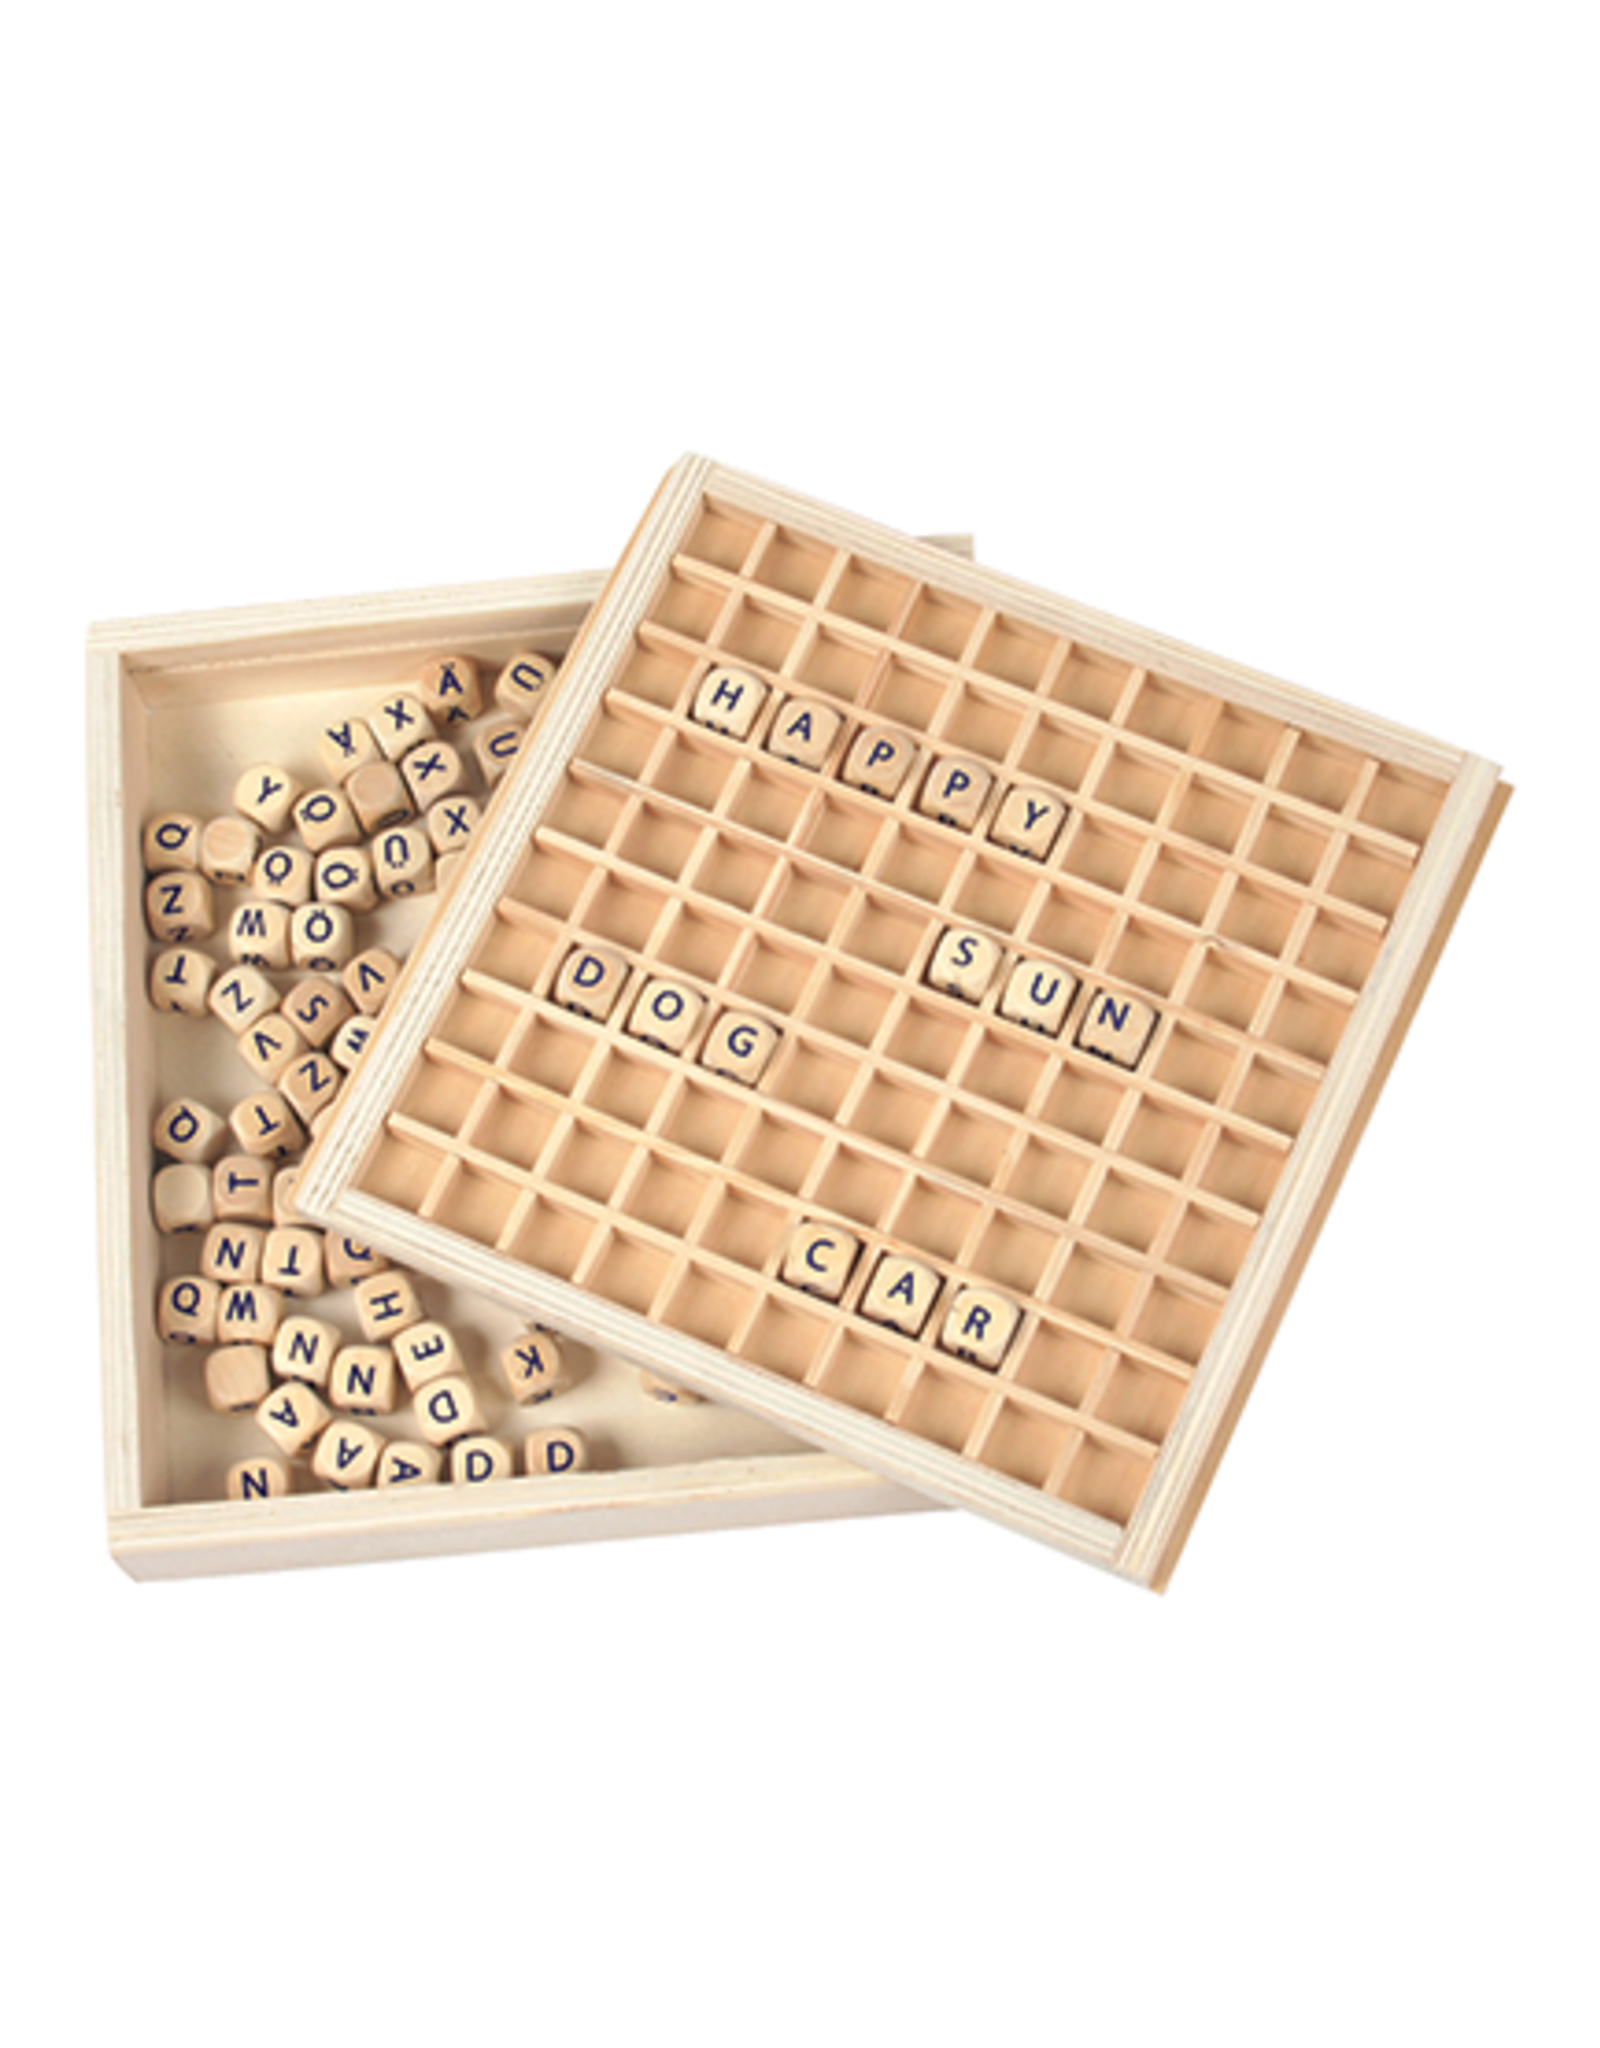 Word Creation Game by Small Foot Design